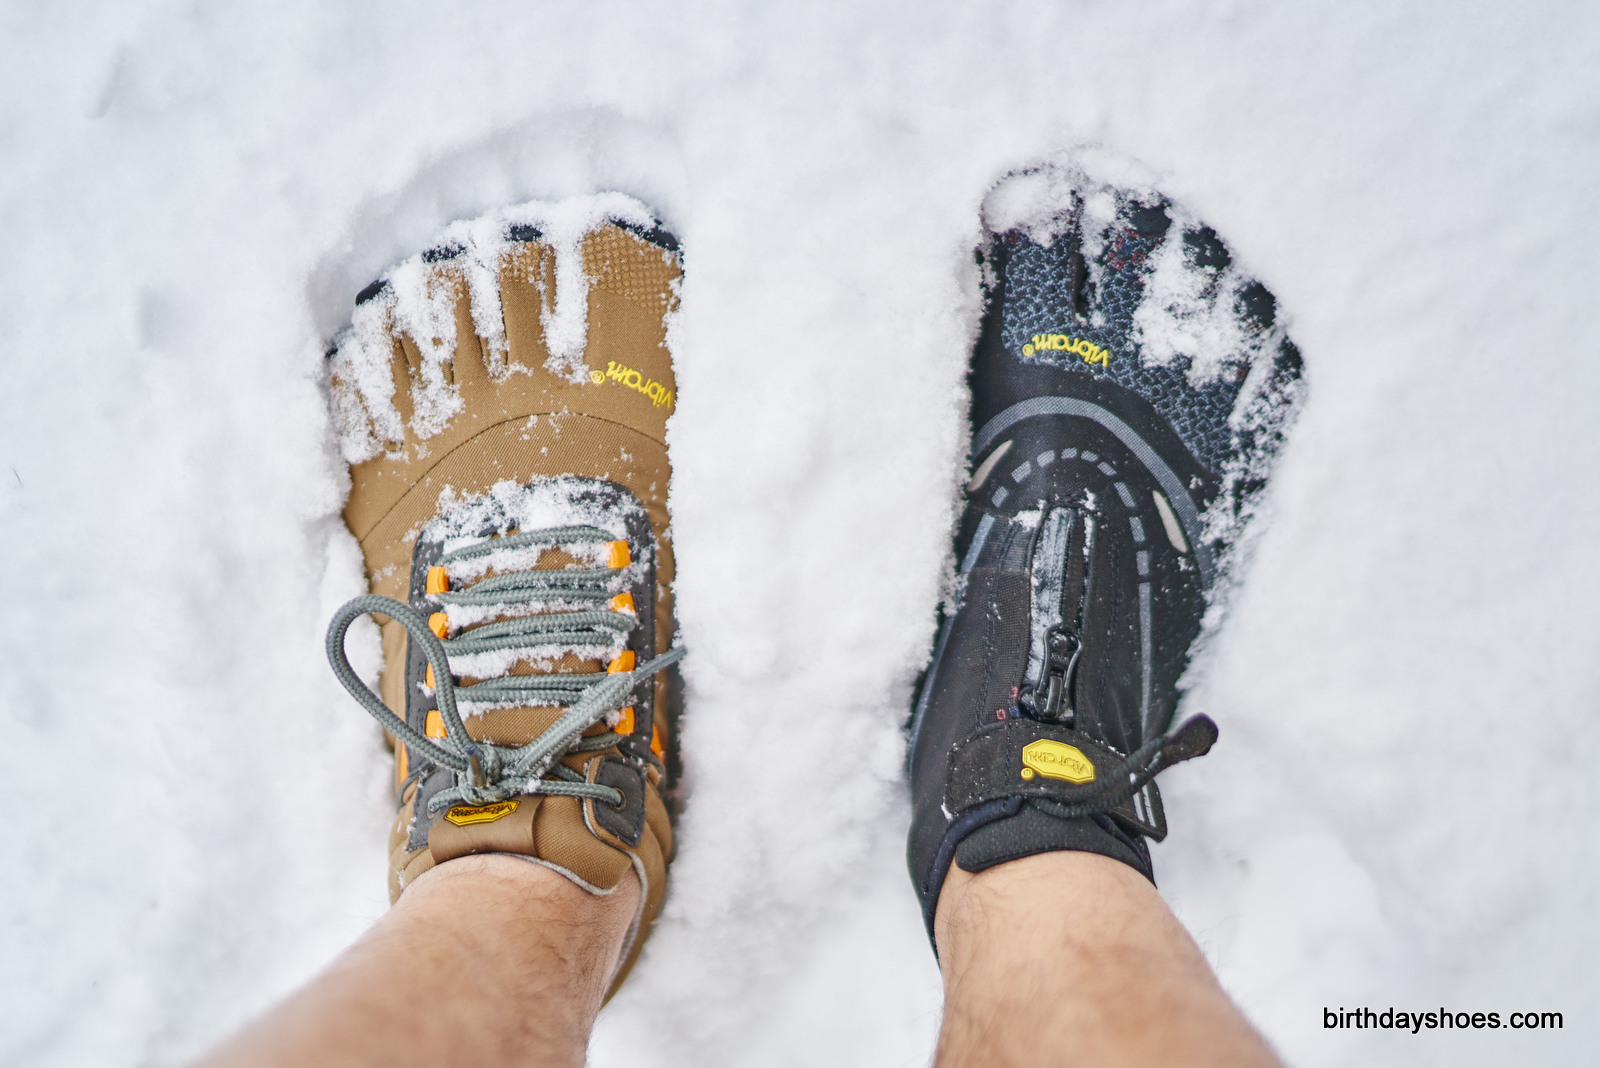 Trek Ascent Insulated vs Bikila EVO WP: The Trek is warmer and more capable, while the WP is truly waterproof, but less flexible and colder